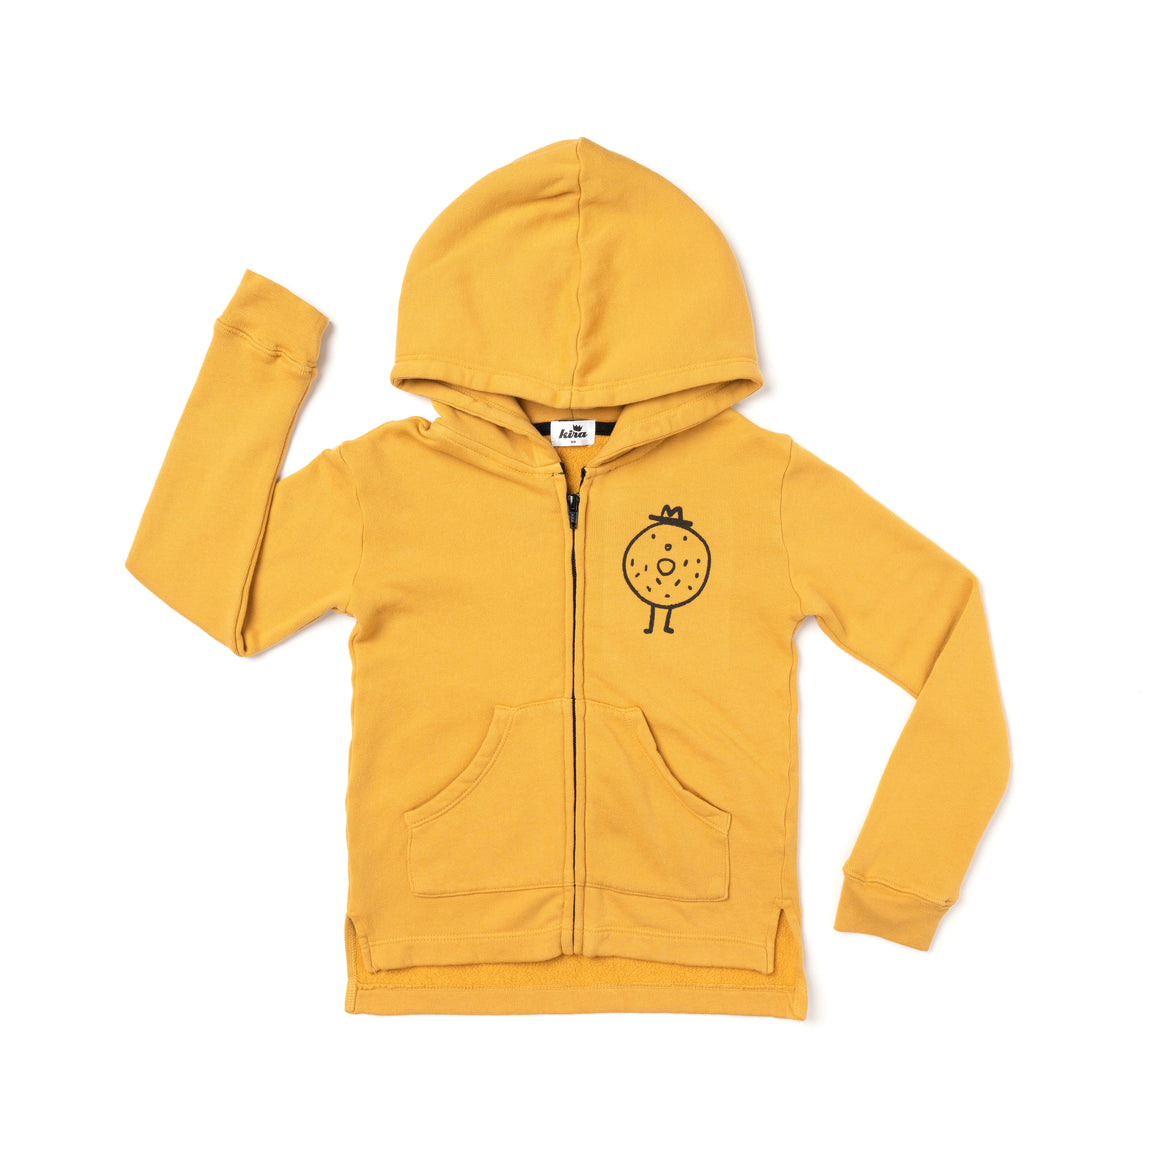 Mr. Bagel Graphic Zip Hoodie, Golden